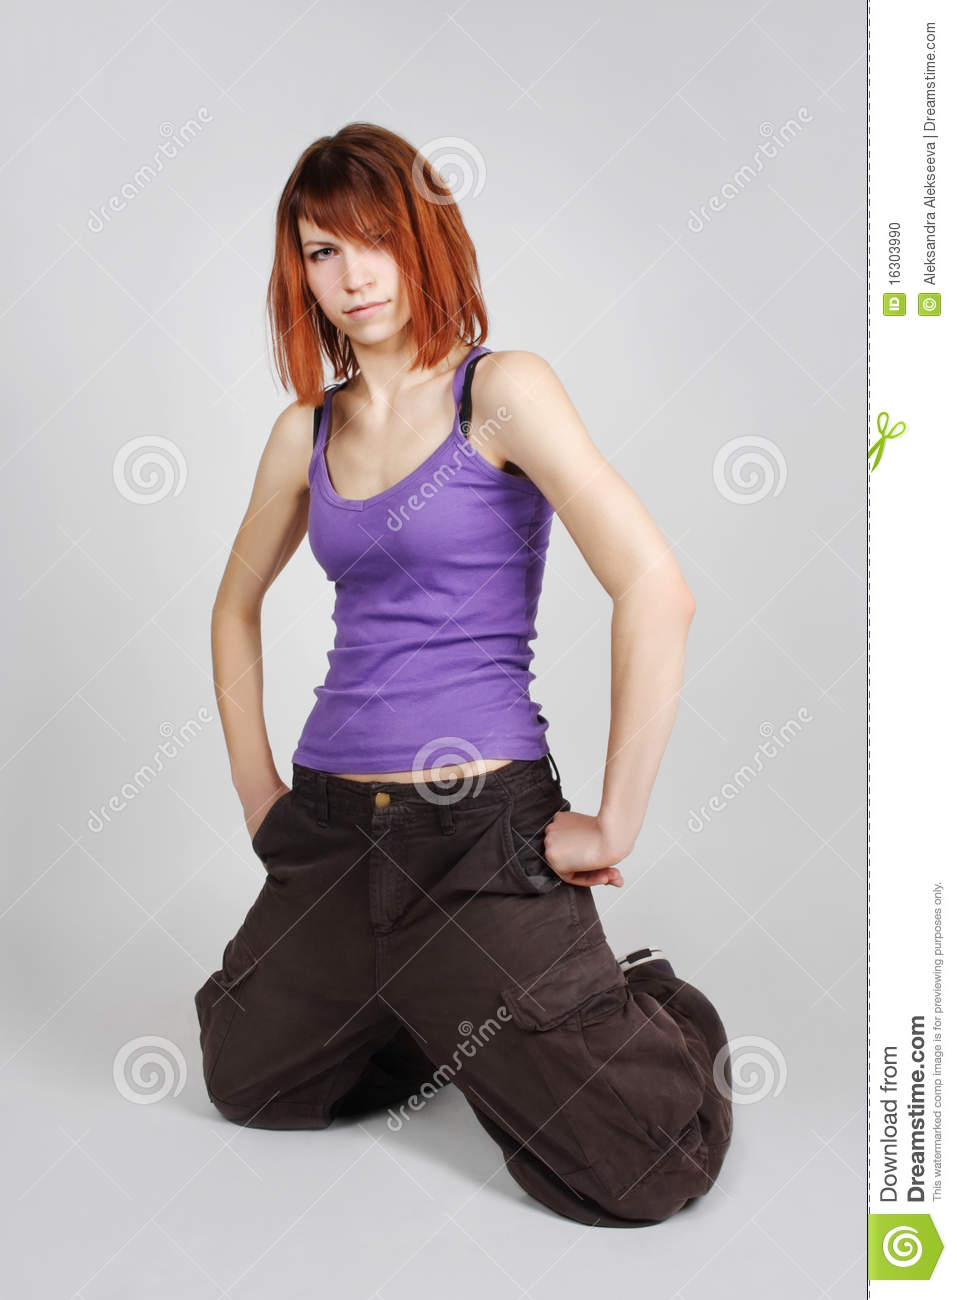 Girl In Hip-Hop Clothes Sitting On Knees Stock Photo -6684